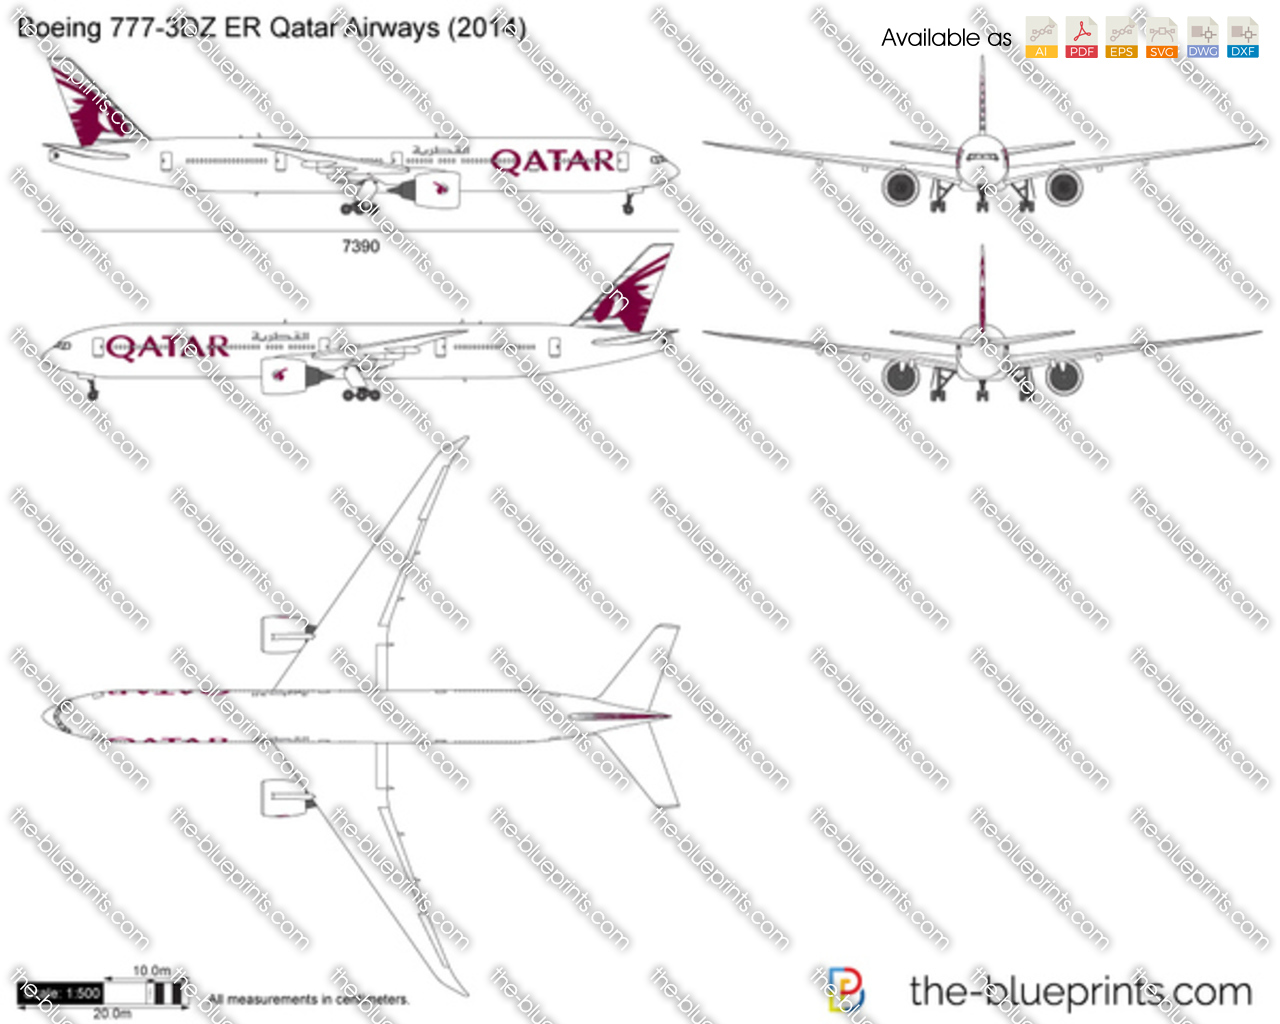 2014 Boeing 777-3DZ ER Qatar Airways